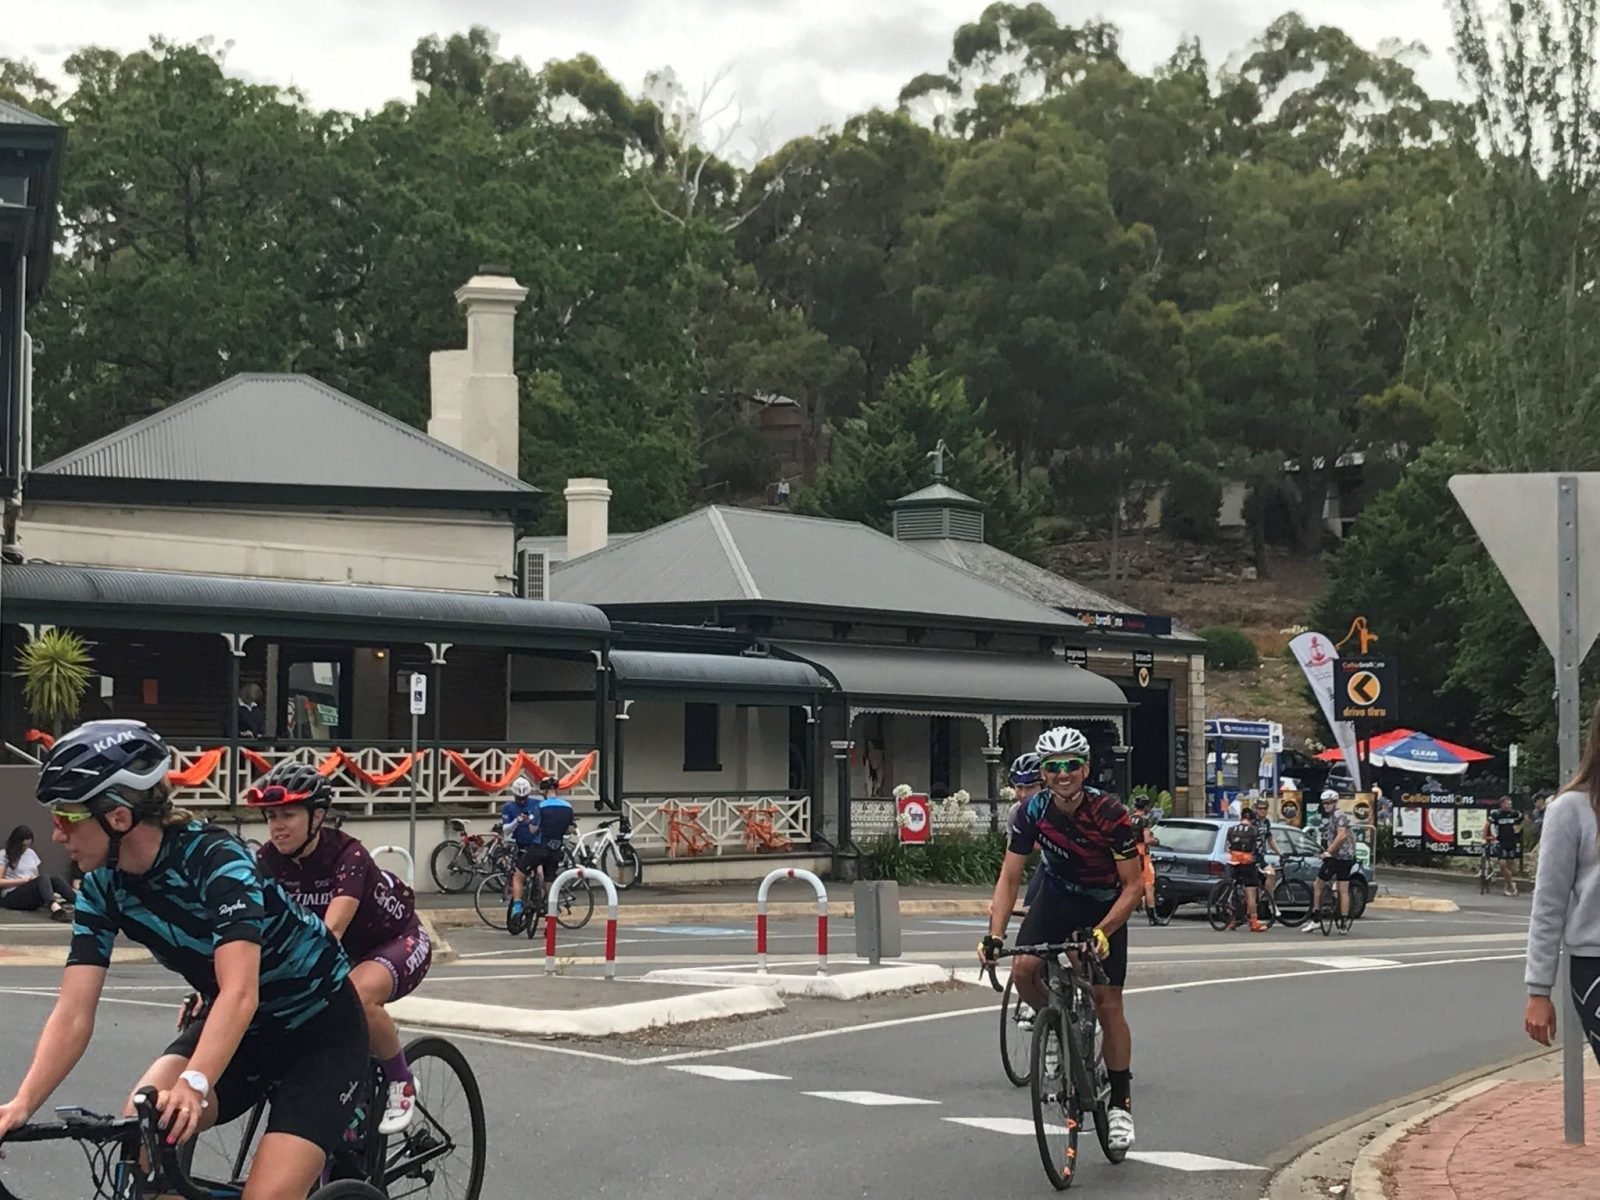 great spot to watch the tour down under